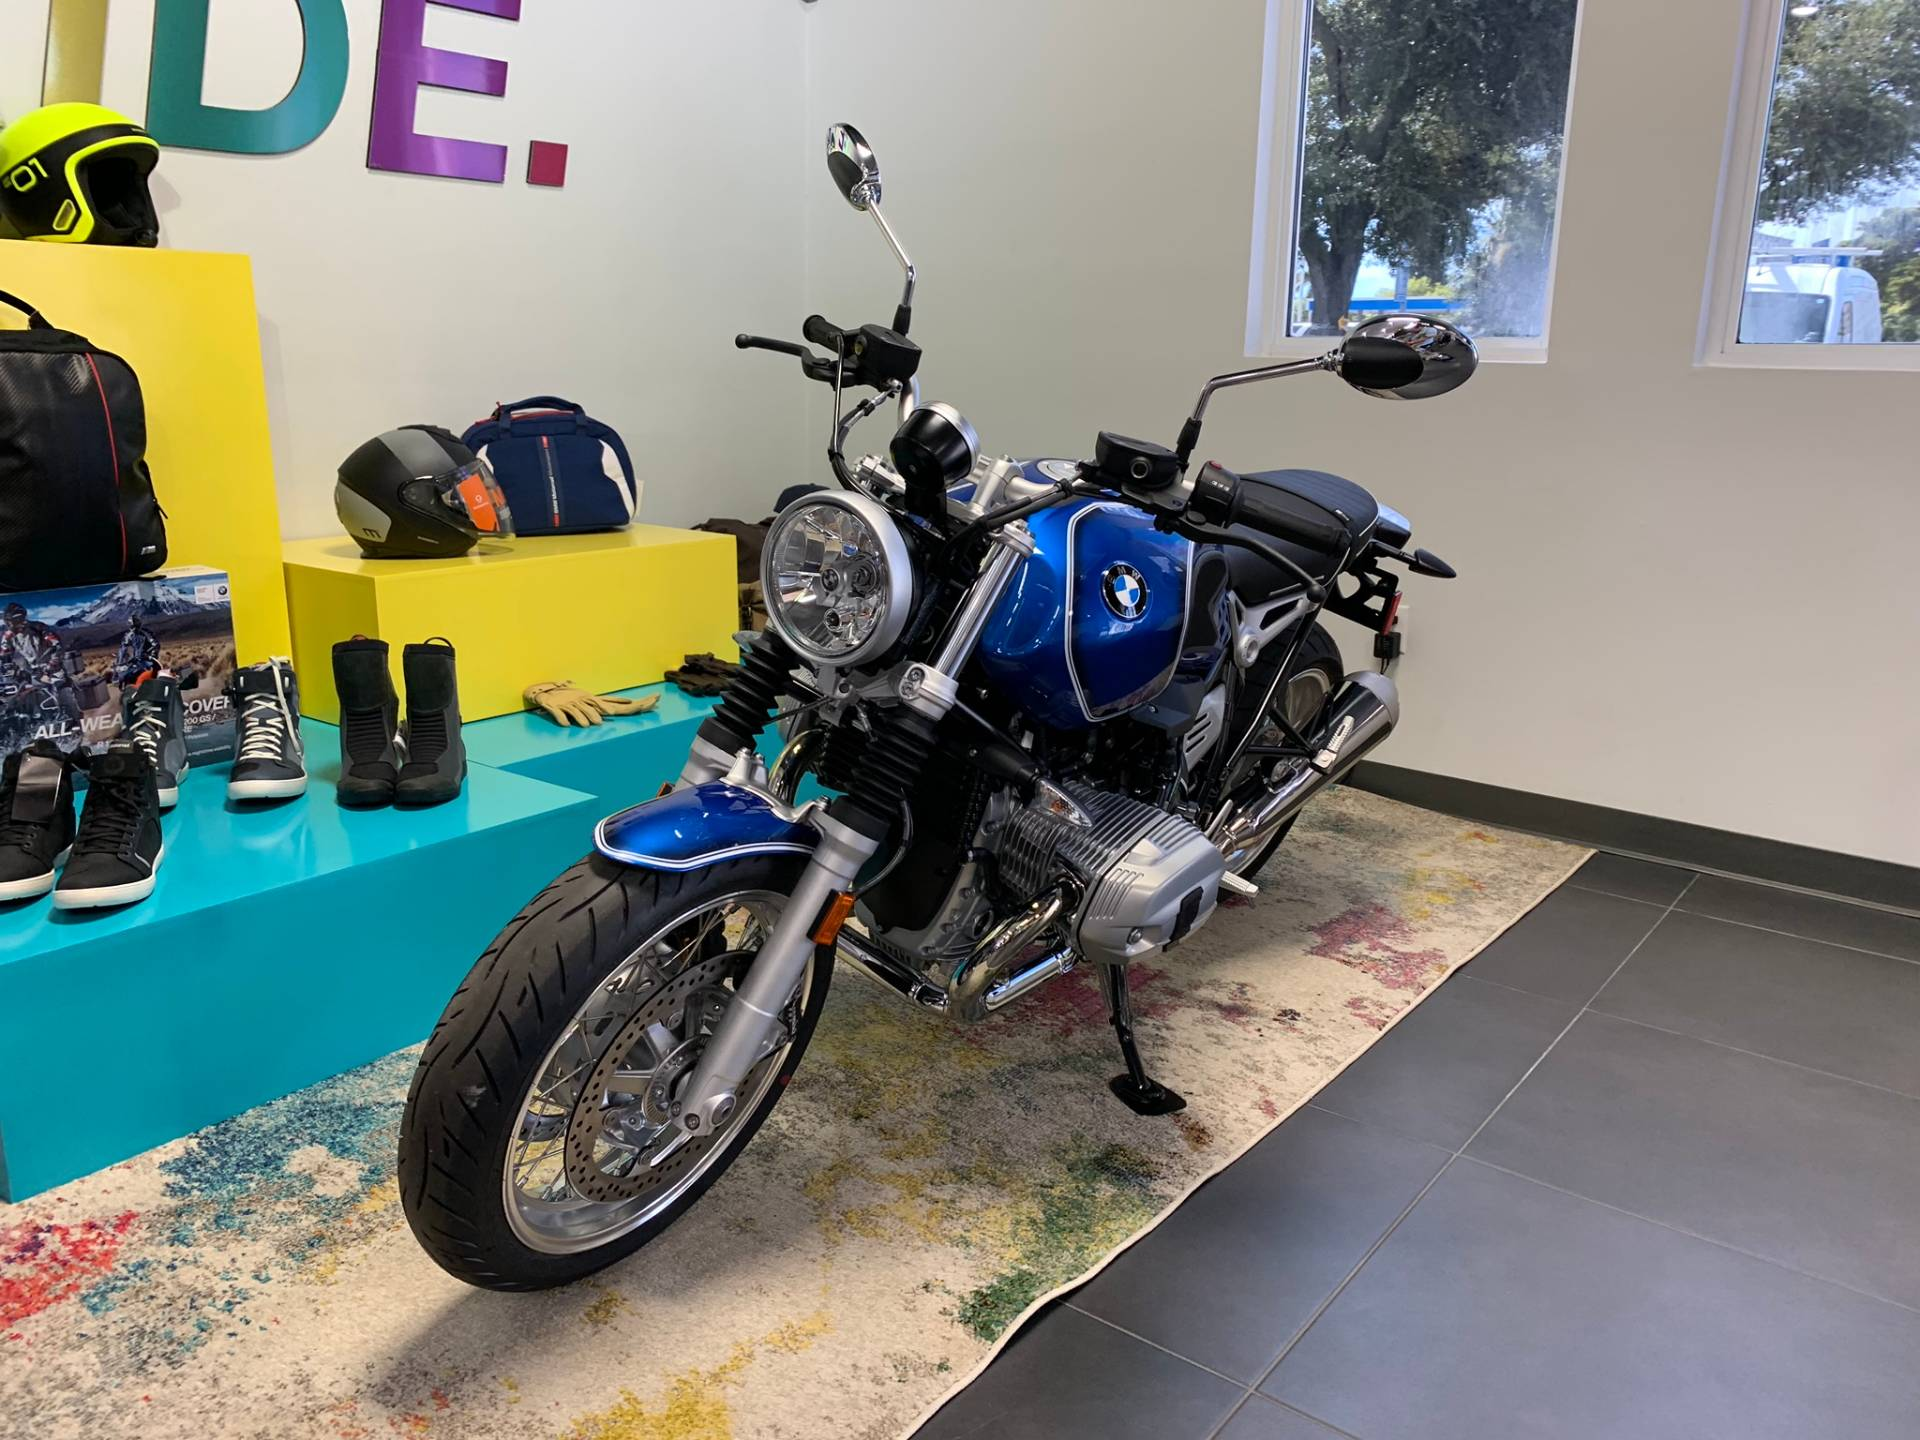 New 2020 2019 BMW R NineT for sale, BMW for sale, BMW Motorcycle Café Racer, new BMW Caffe, Cafe Racer, BMW. BMW Motorcycles of Miami, Motorcycles of Miami, Motorcycles Miami, New Motorcycles, Used Motorcycles, pre-owned. #BMWMotorcyclesOfMiami #MotorcyclesOfMiami. - Photo 38